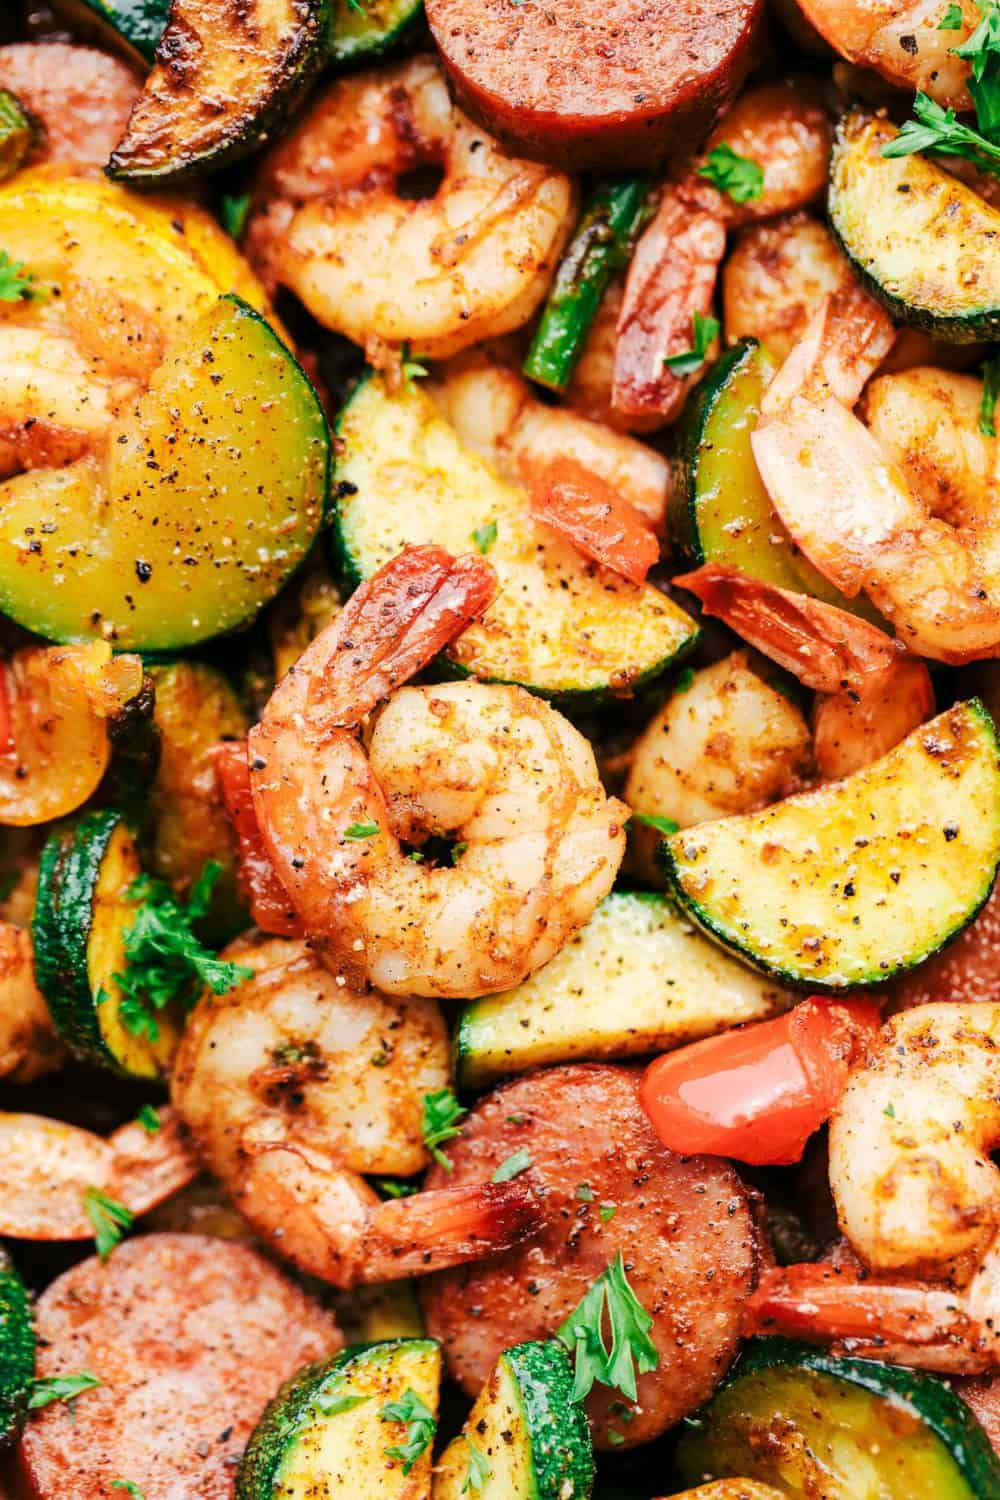 Cajun Shrimp and Sausage Vegetable Skillet 2